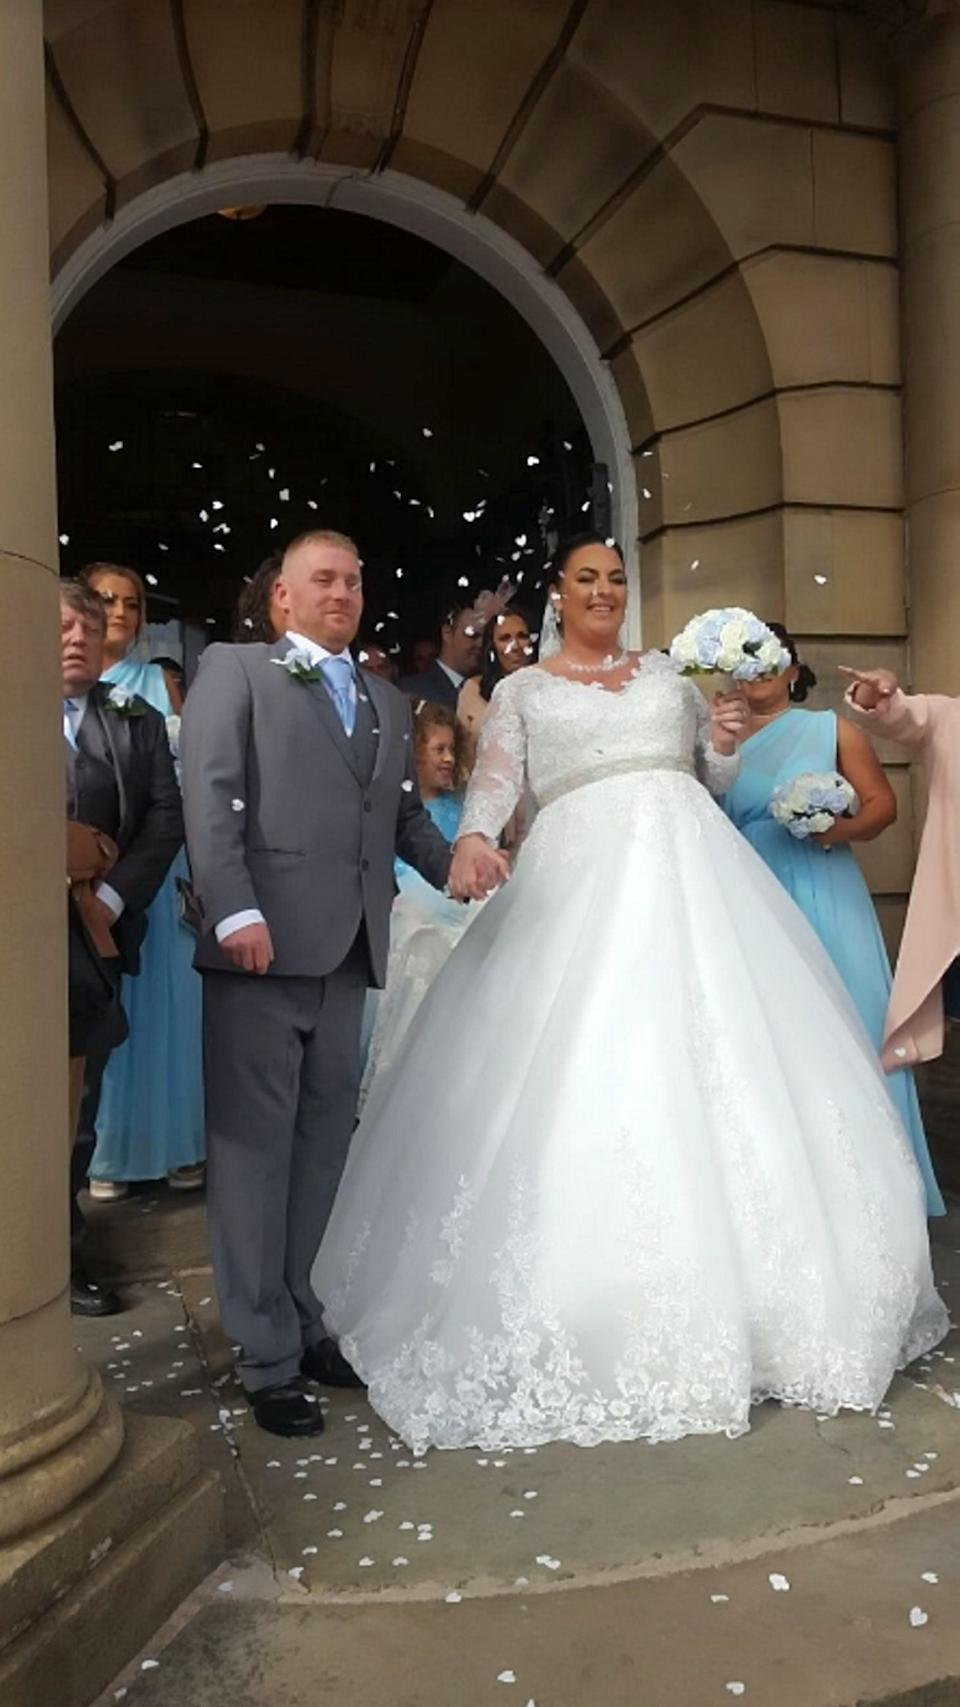 The couple still went on to have a happy wedding. [Photo: SWNS]